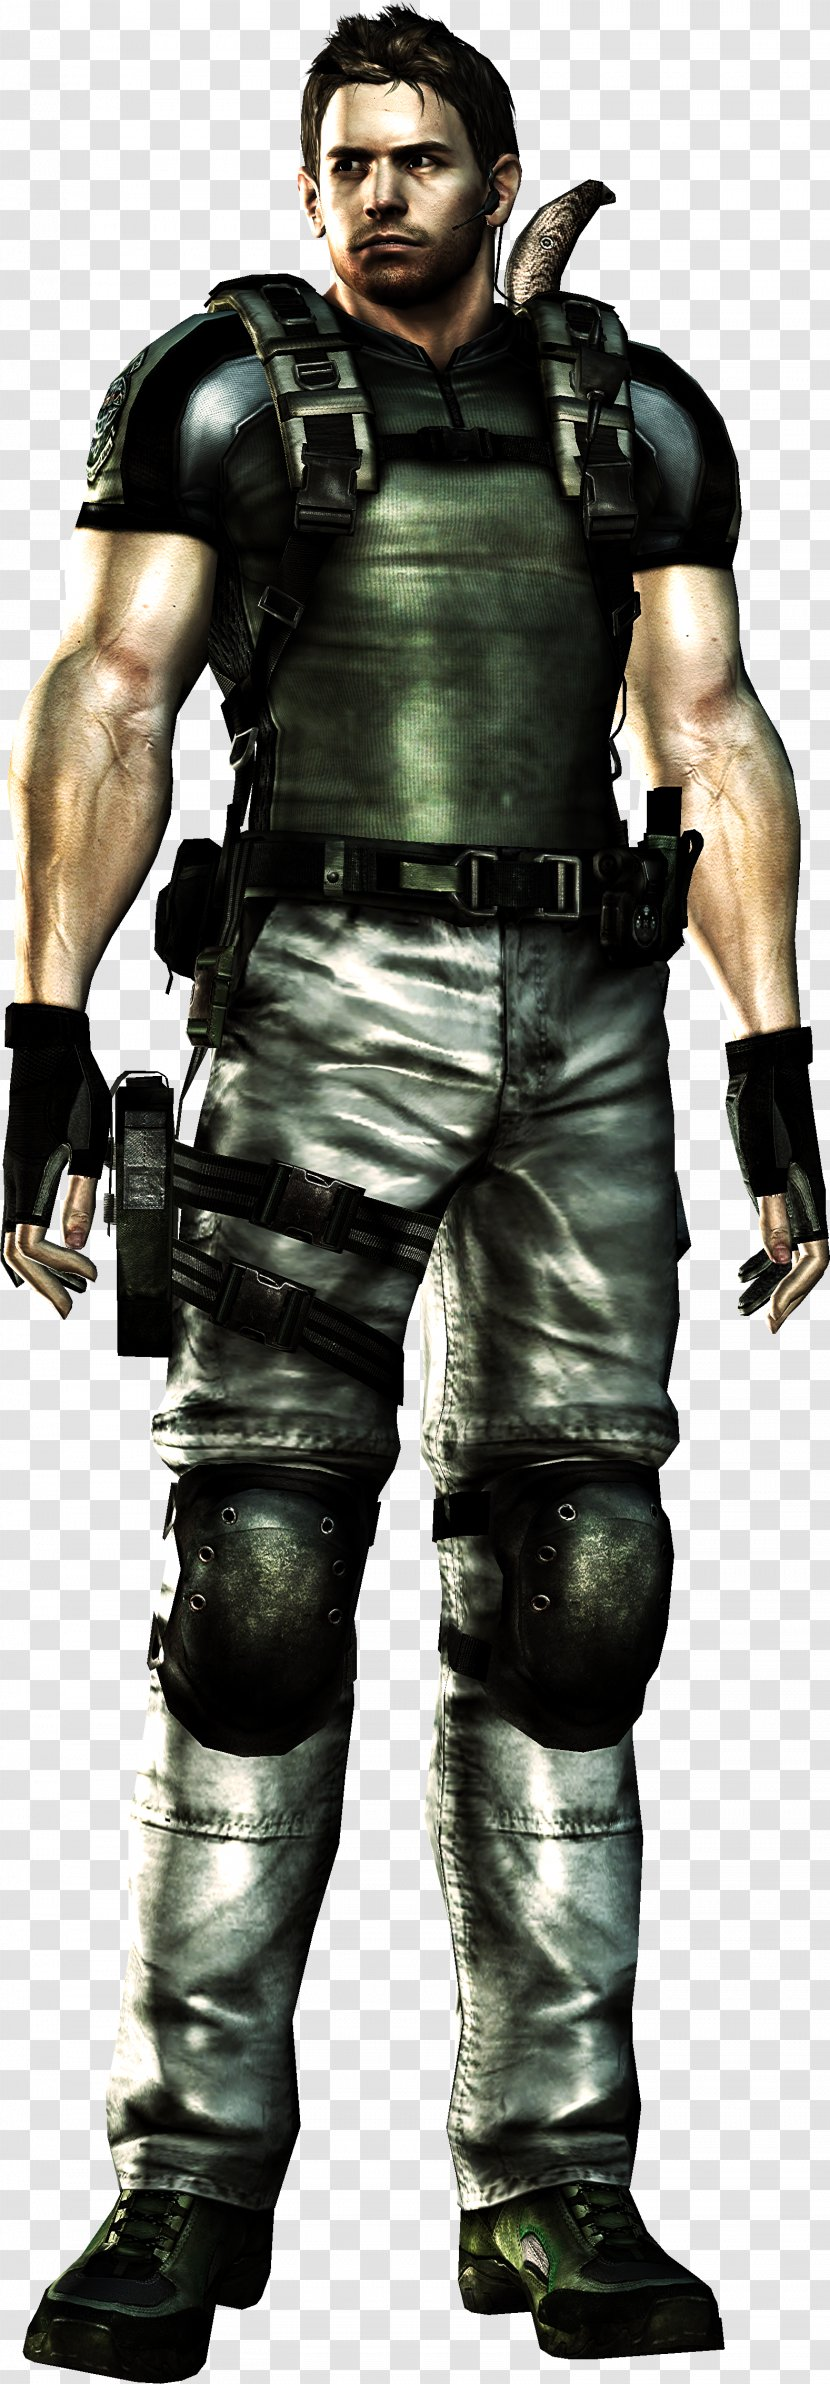 Resident Evil 5 7 Biohazard 6 Chris Redfield Muscle Transparent Png